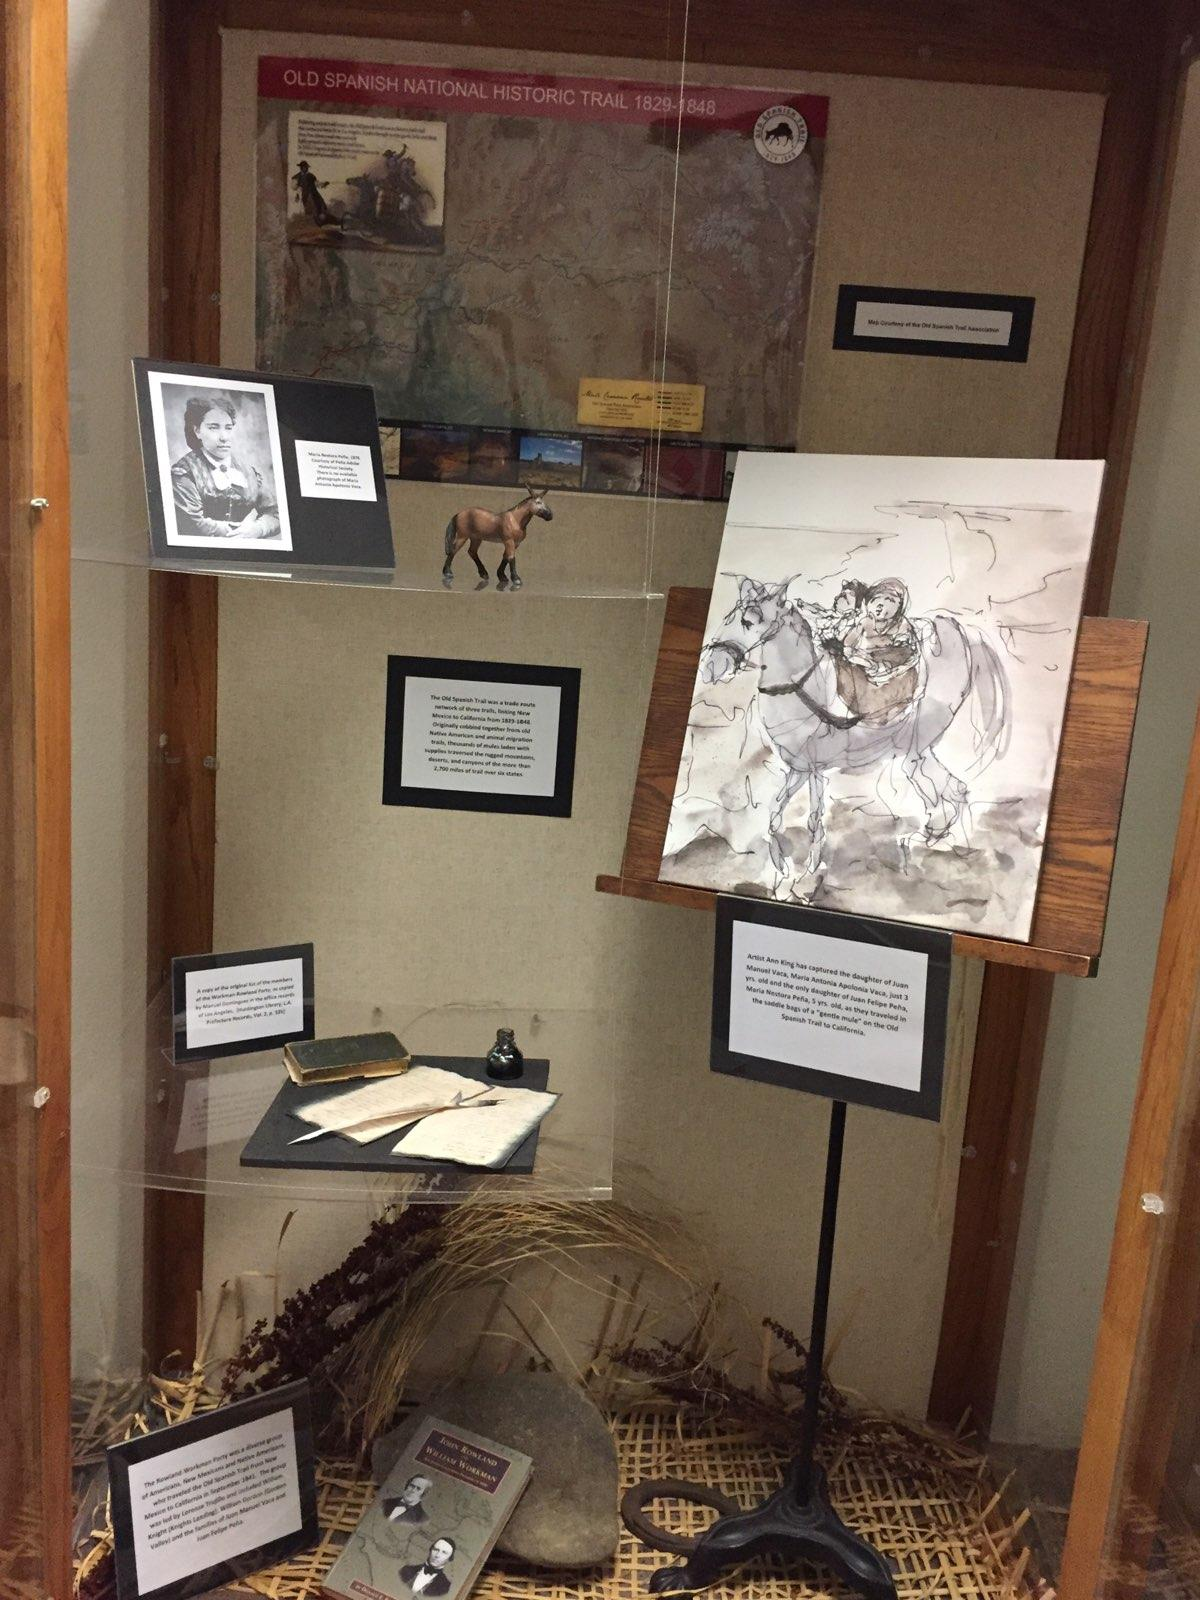 Old Spanish Trail History Now Displayed at Vacaville City Hall